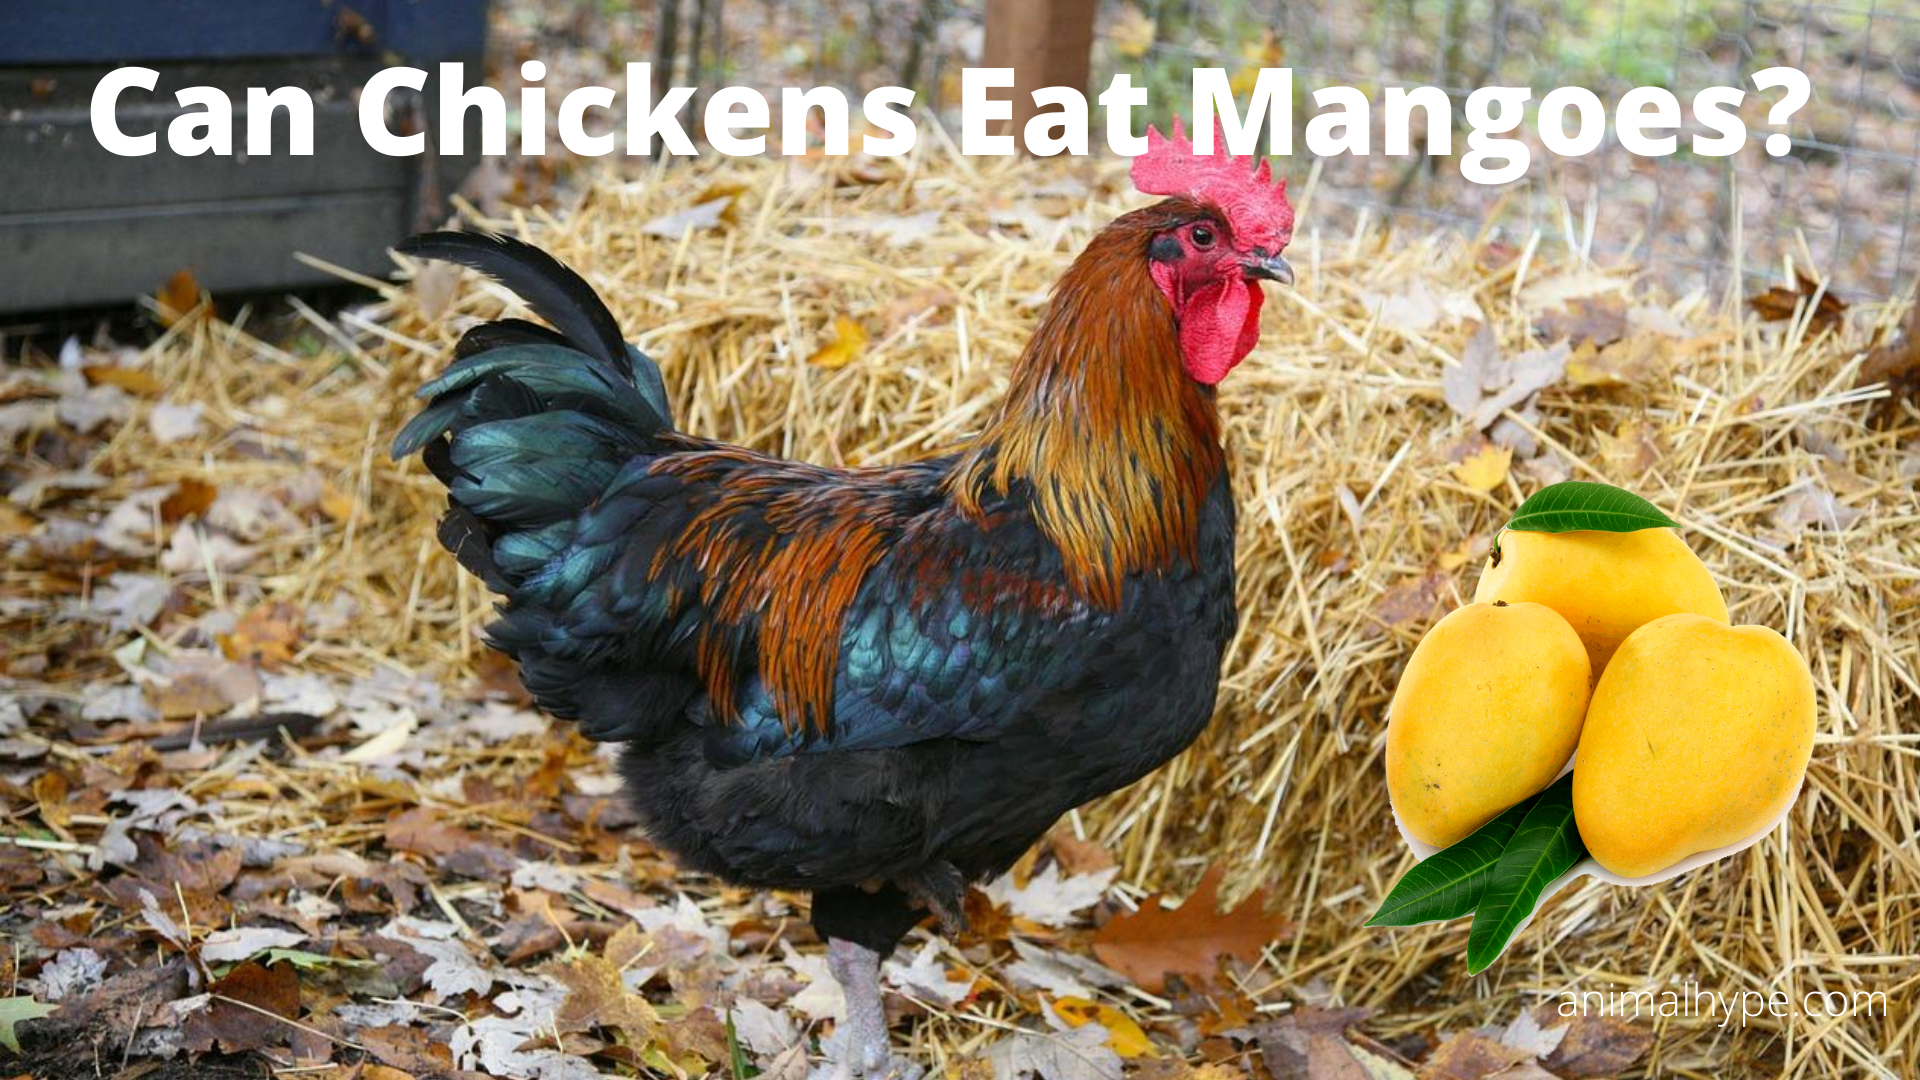 Can Chickens Eat Mangoes